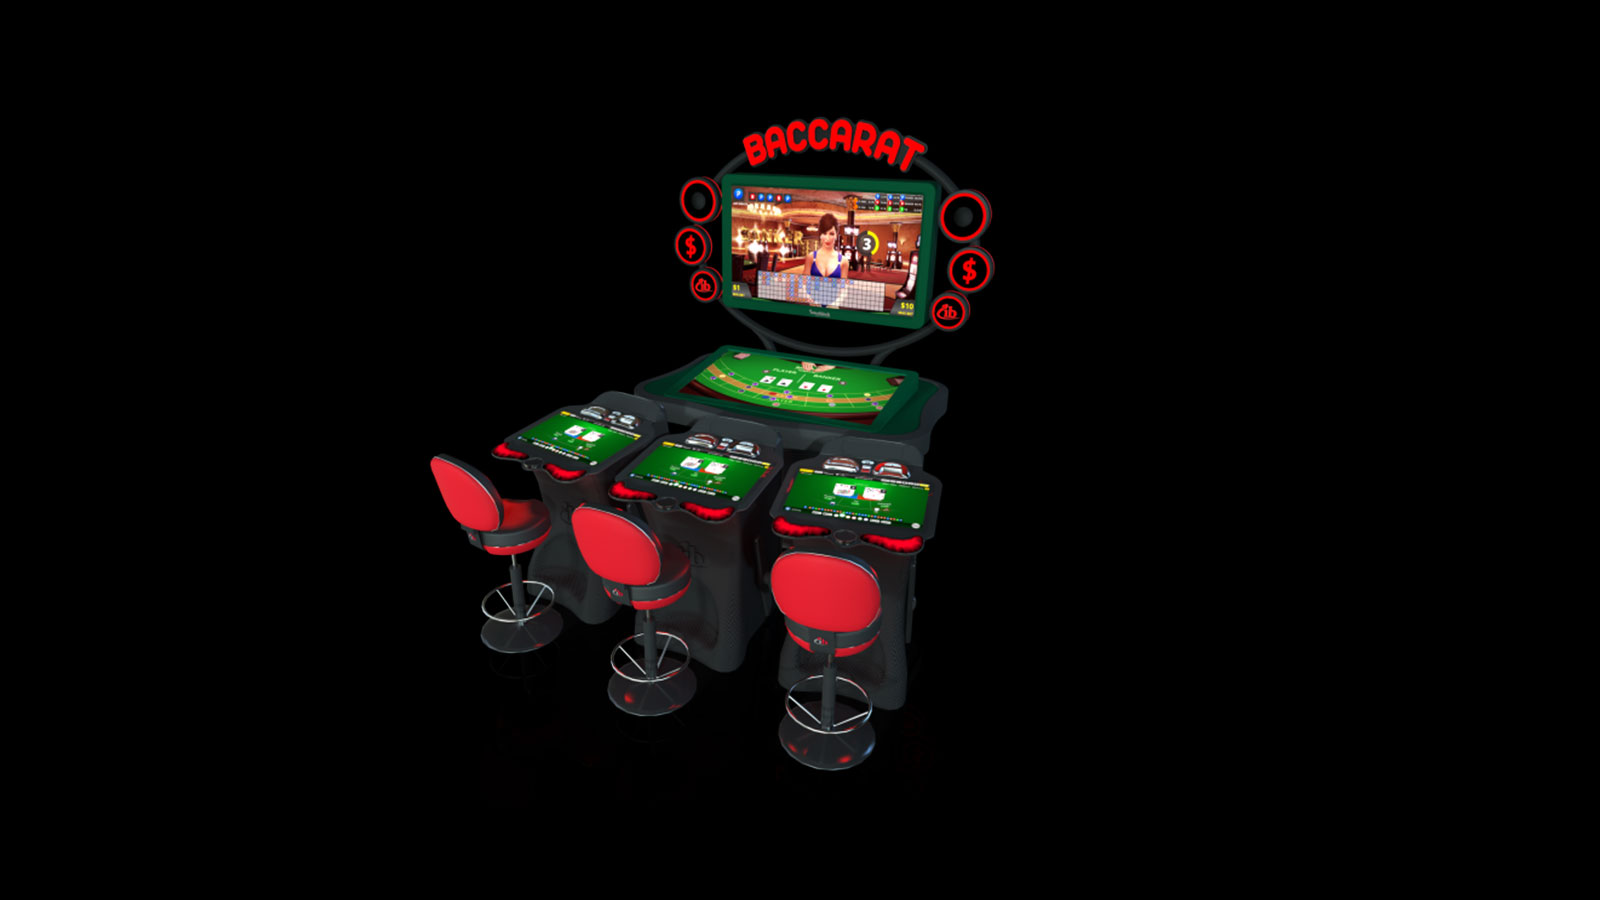 Baccarat e-table